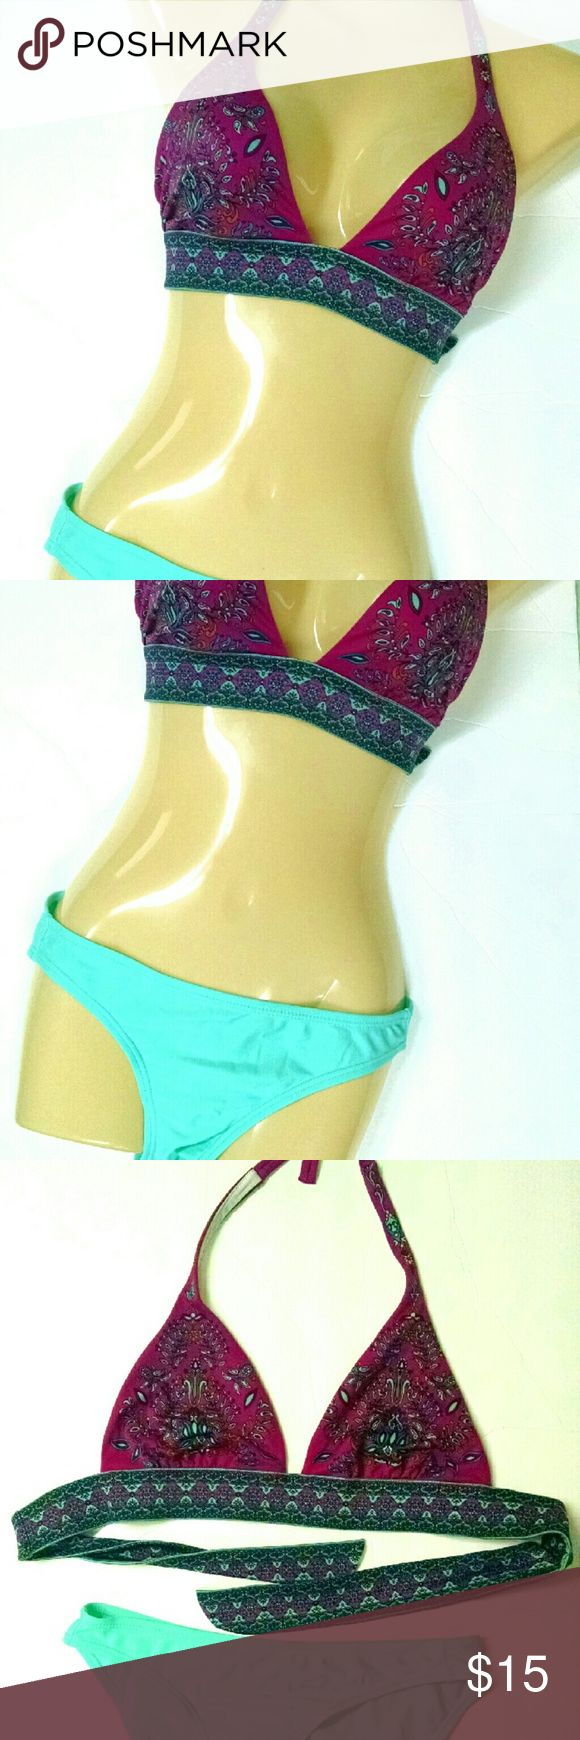 Featured!VS Bandana Bikini Top EUC This is an adorable top! Tag is partially removed, but it fits a M-L.  Tie is long, so it really depends on the kind of coverage you desire.This is a no support style. There are no places to insert padding :) I guess if you wanted you could simply wear the pads on the inside freely. Comment with questions! Victoria's Secret Swim Bikinis